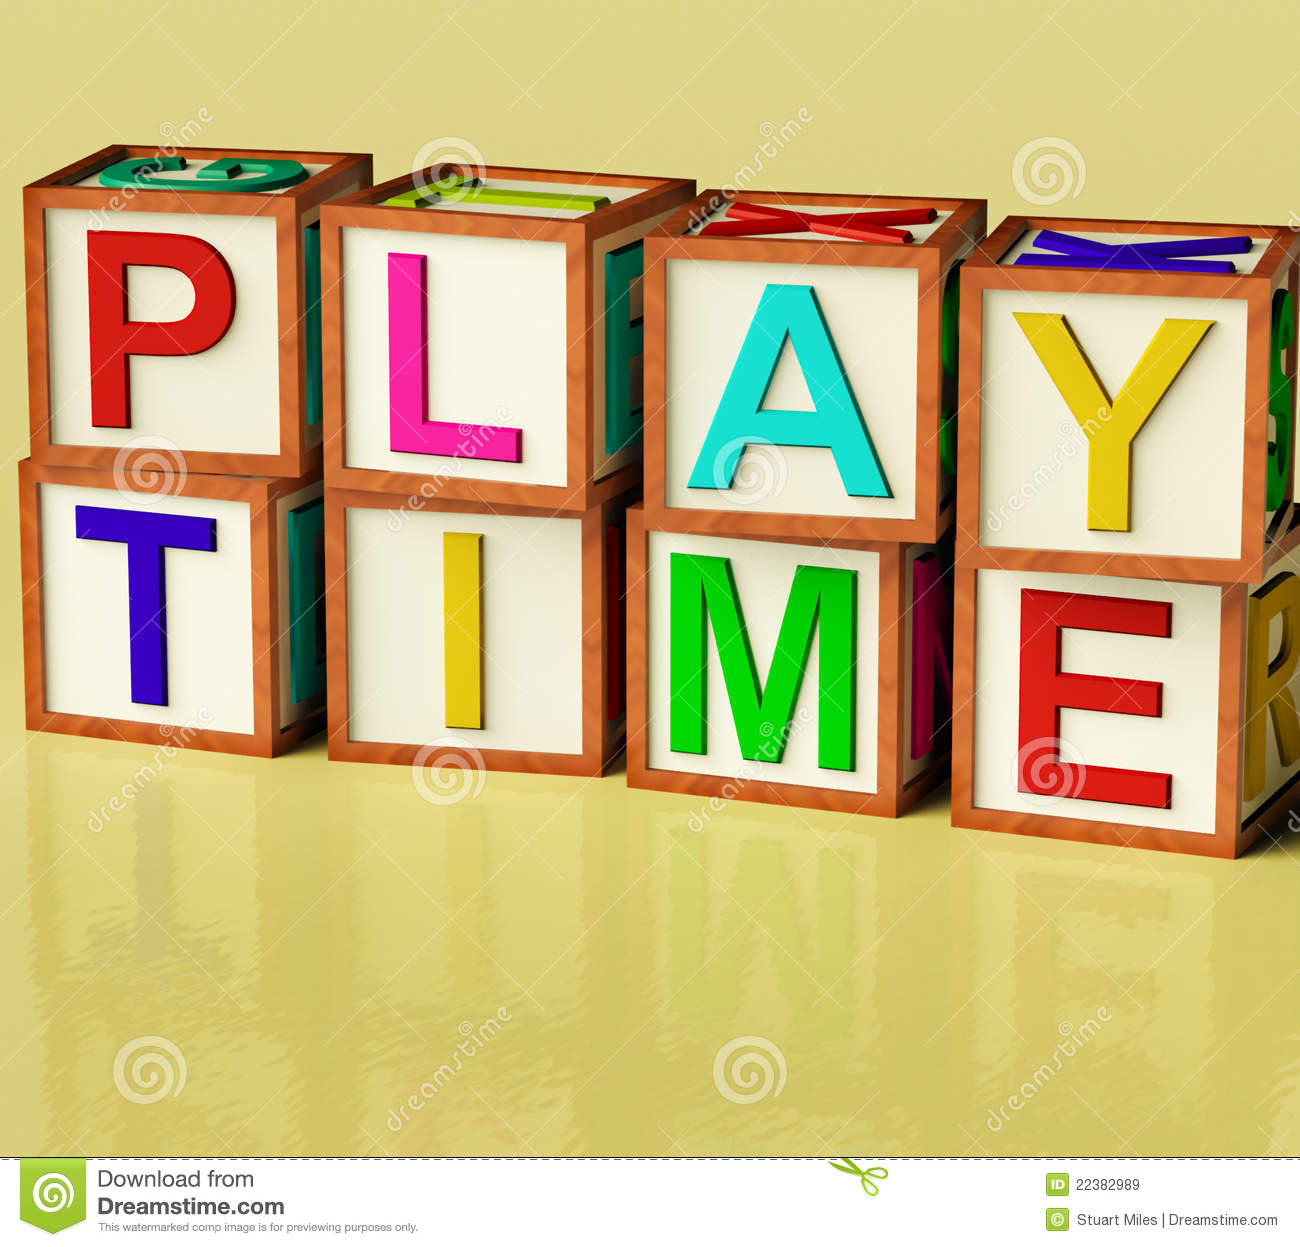 kids blocks spelling play time stock illustration - illustration of